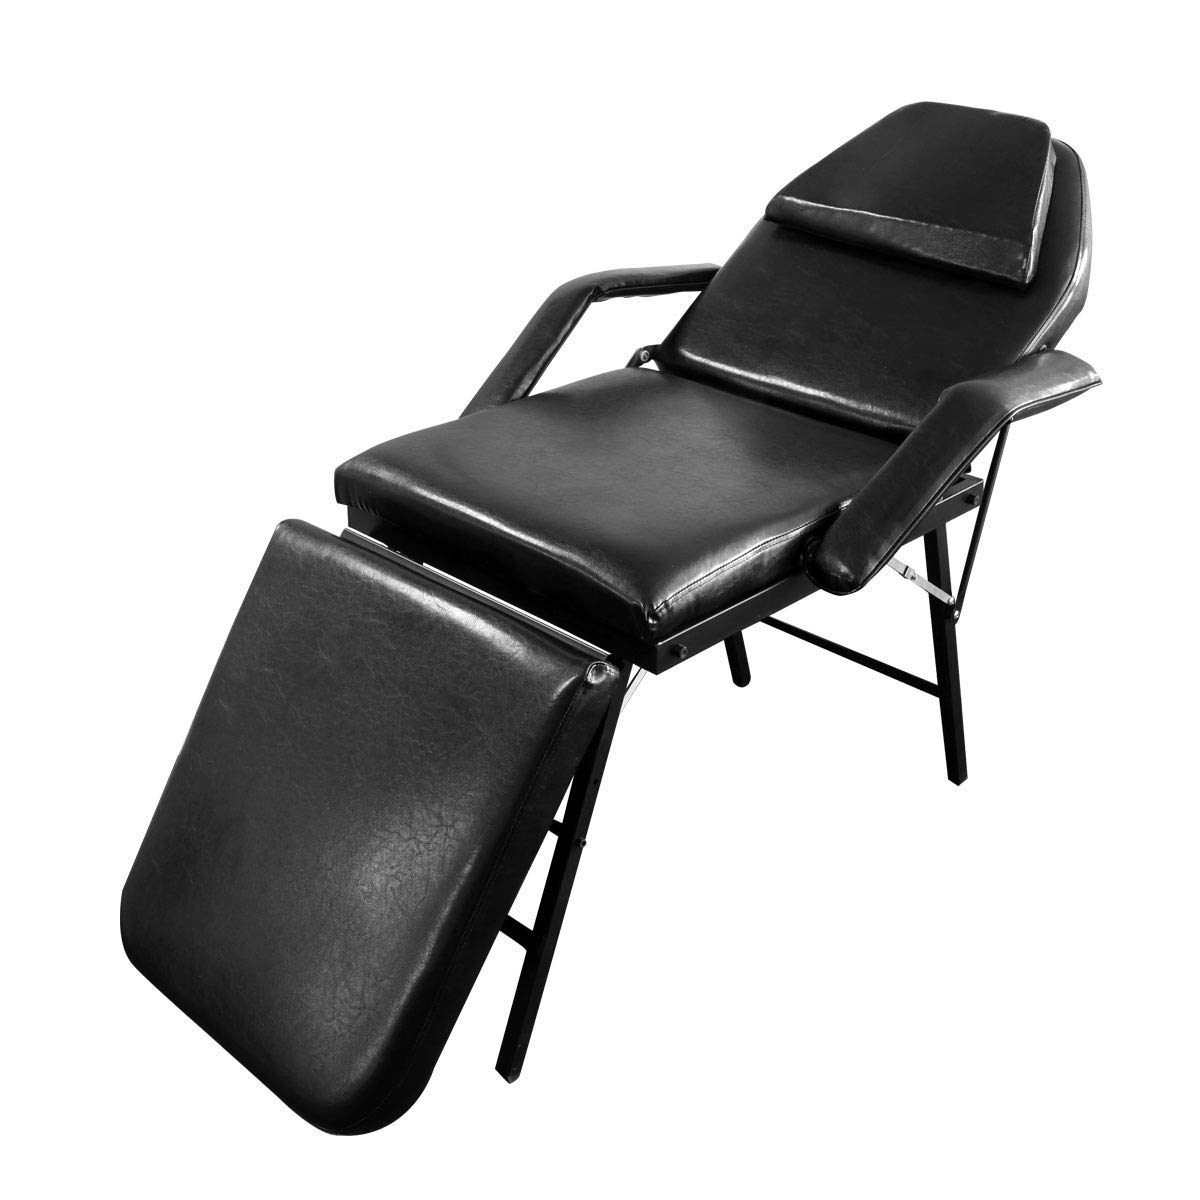 Foldable Bed Chair Magshion No Assembly Foldable Adjustable Massage Bed Chair Beauty Spa Salon Barber Tattoo Chair Black